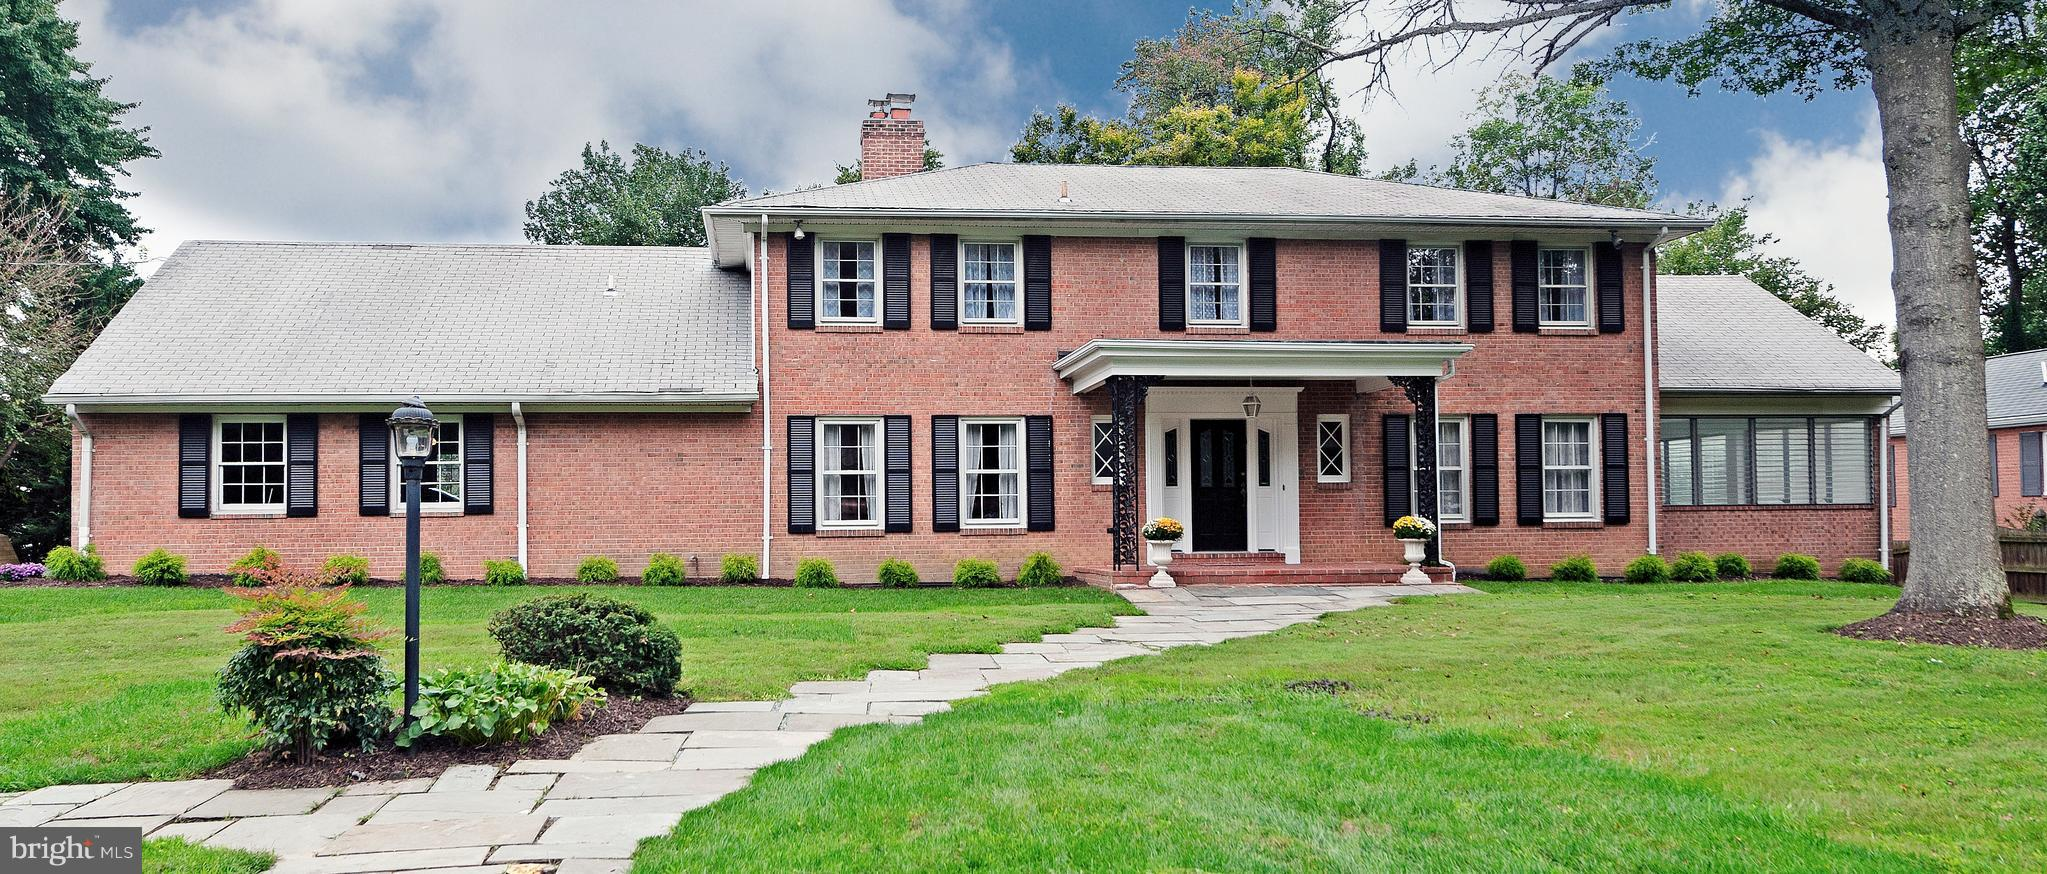 14314 CHESTERFIELD ROAD, ROCKVILLE, MD 20853